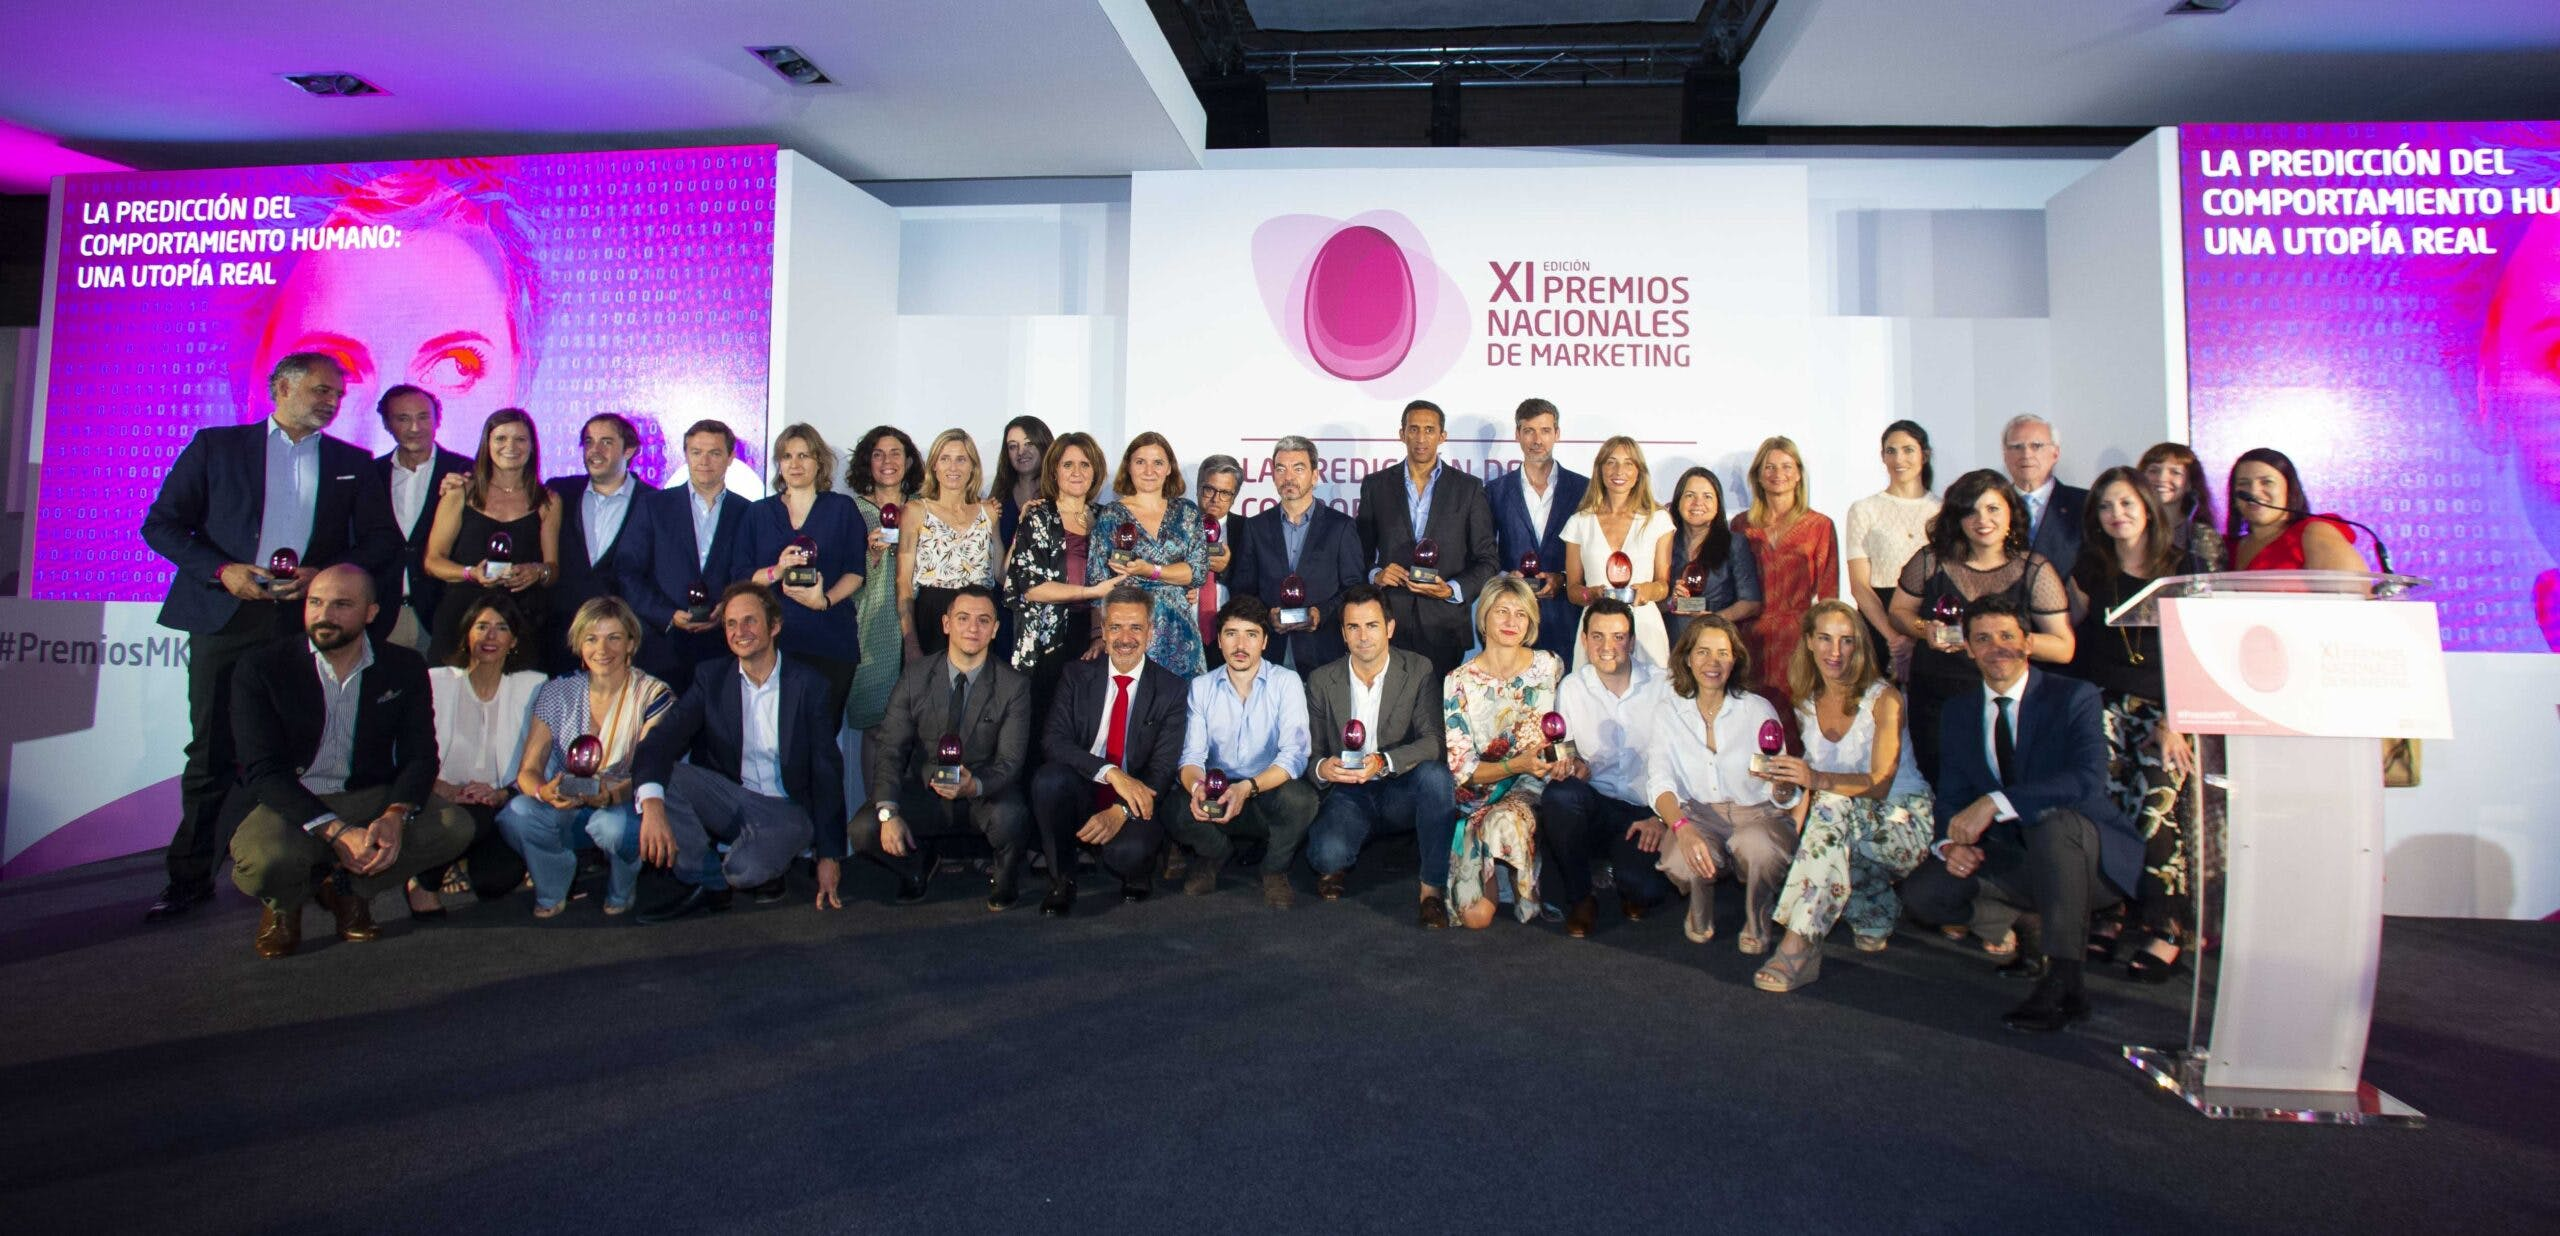 """Image of 27.06.19 Imagen Ganadores Premios MKT 1 scaled in Santiago Alfonso, """"Best Marketing Professional 2019"""" - Cosentino"""